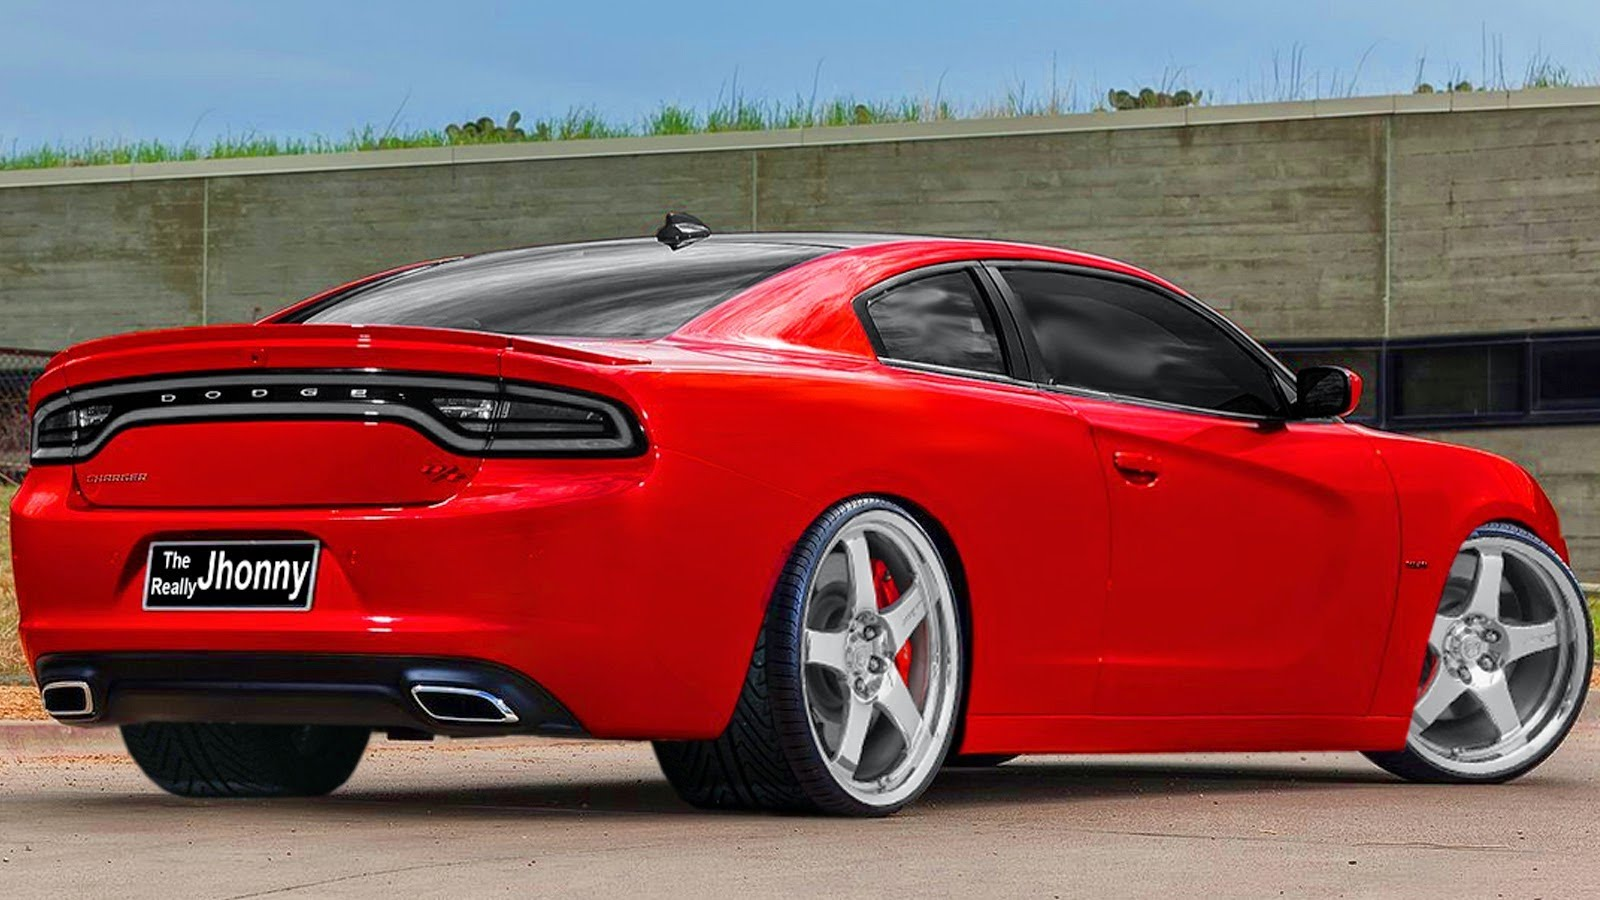 2016 Dodge Charger Coupe New Facelift - Future Cars Models